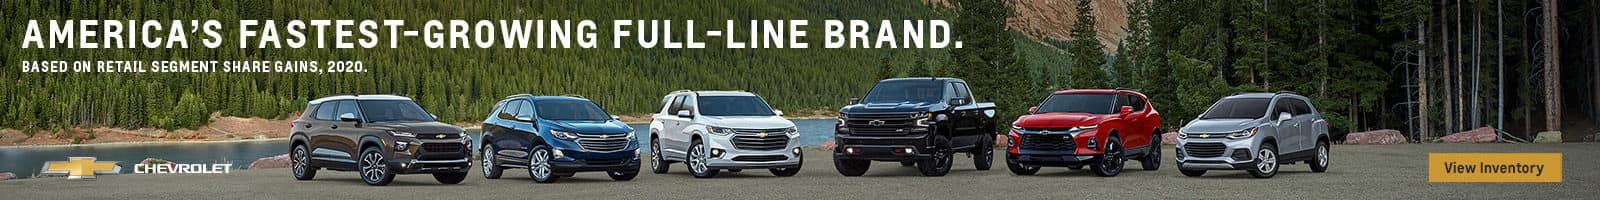 Americas Fastest Growing Full Line Brand Chevrolet View inventory